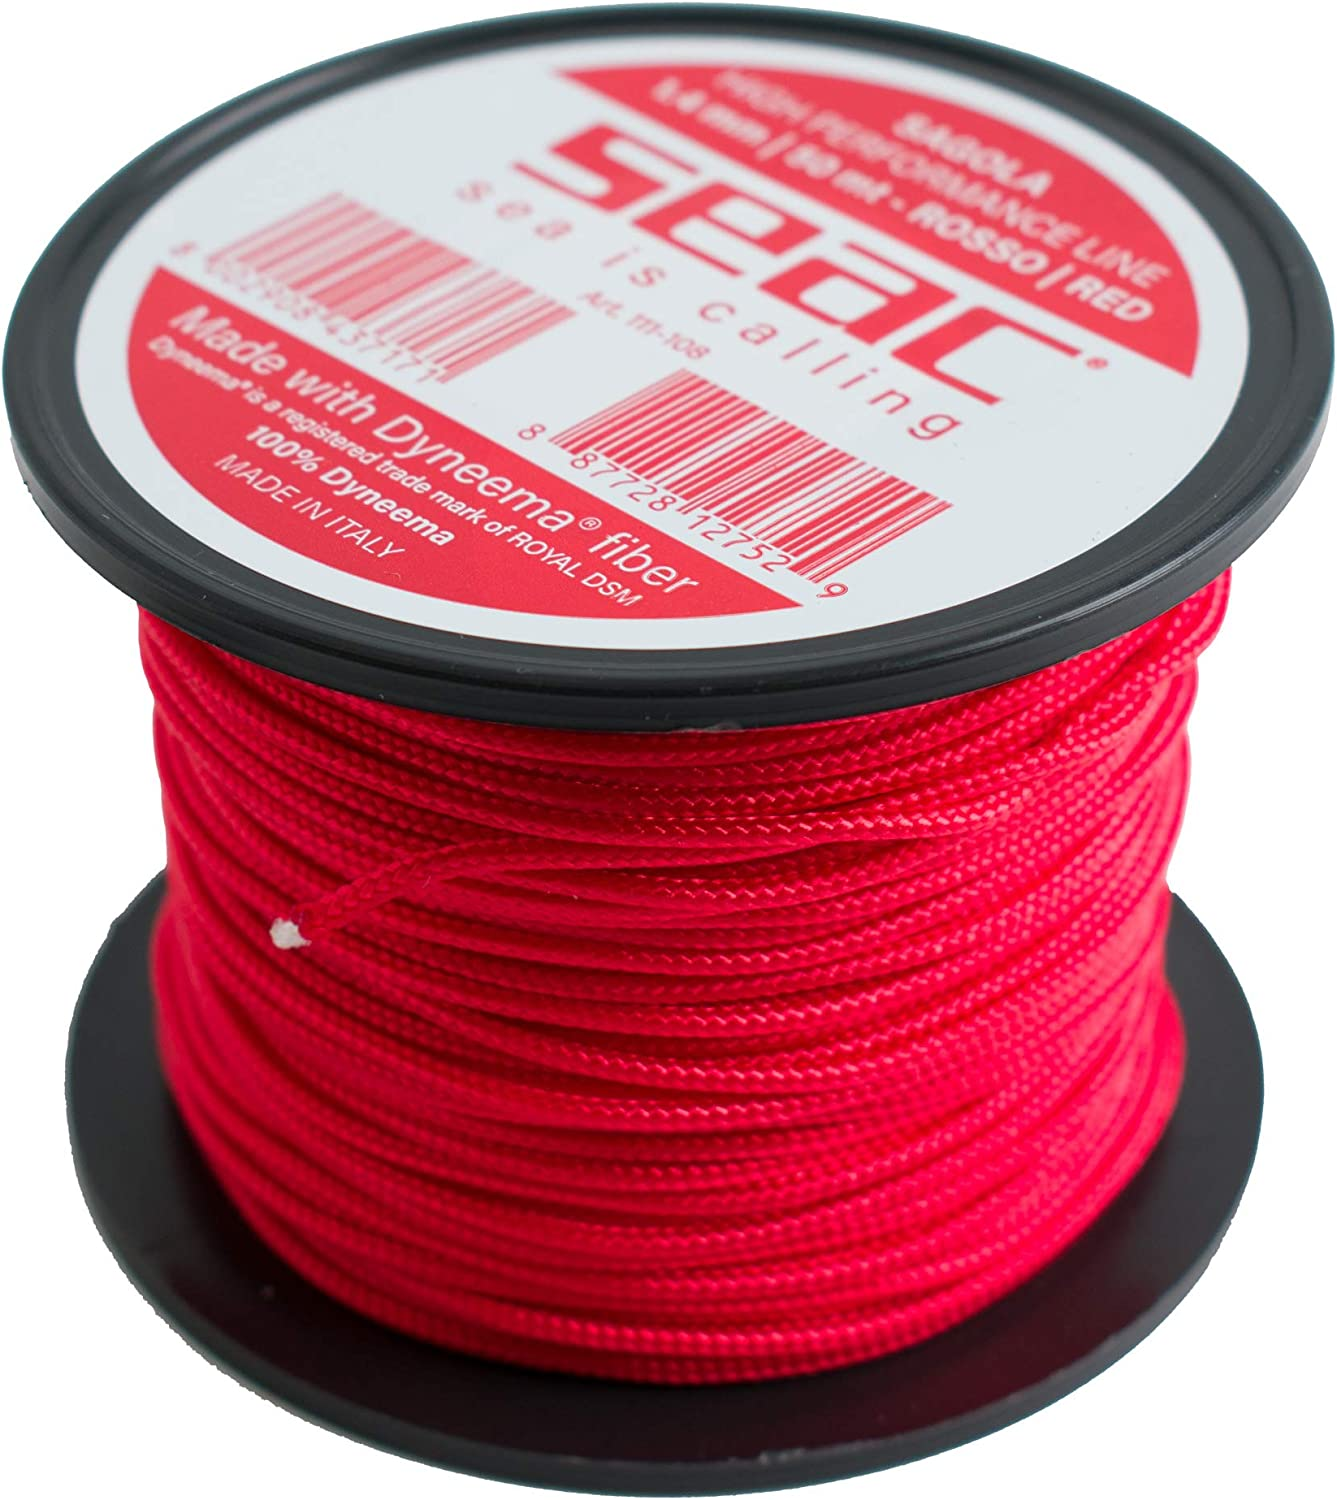 SEAC Unisexs Dyneema for Spearfishing 50 mt /Ø1.4mm Red